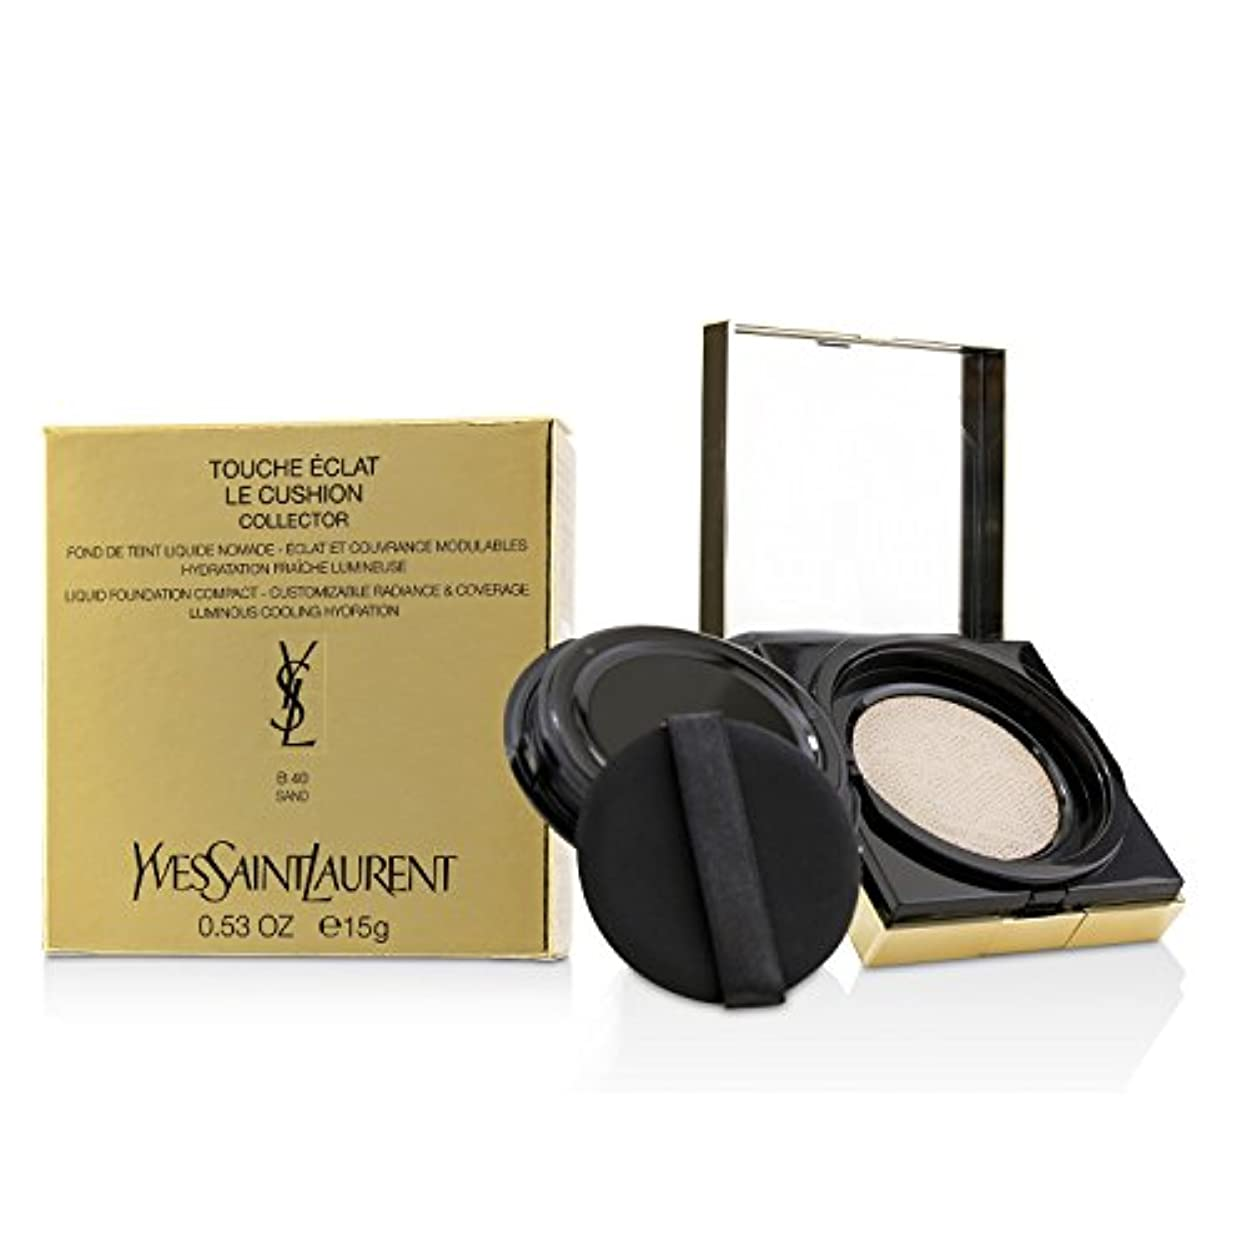 イヴサンローラン Touche Eclat Le Cushion Liquid Foundation Compact - #B40 Sand (Collector) 15g/0.53oz並行輸入品